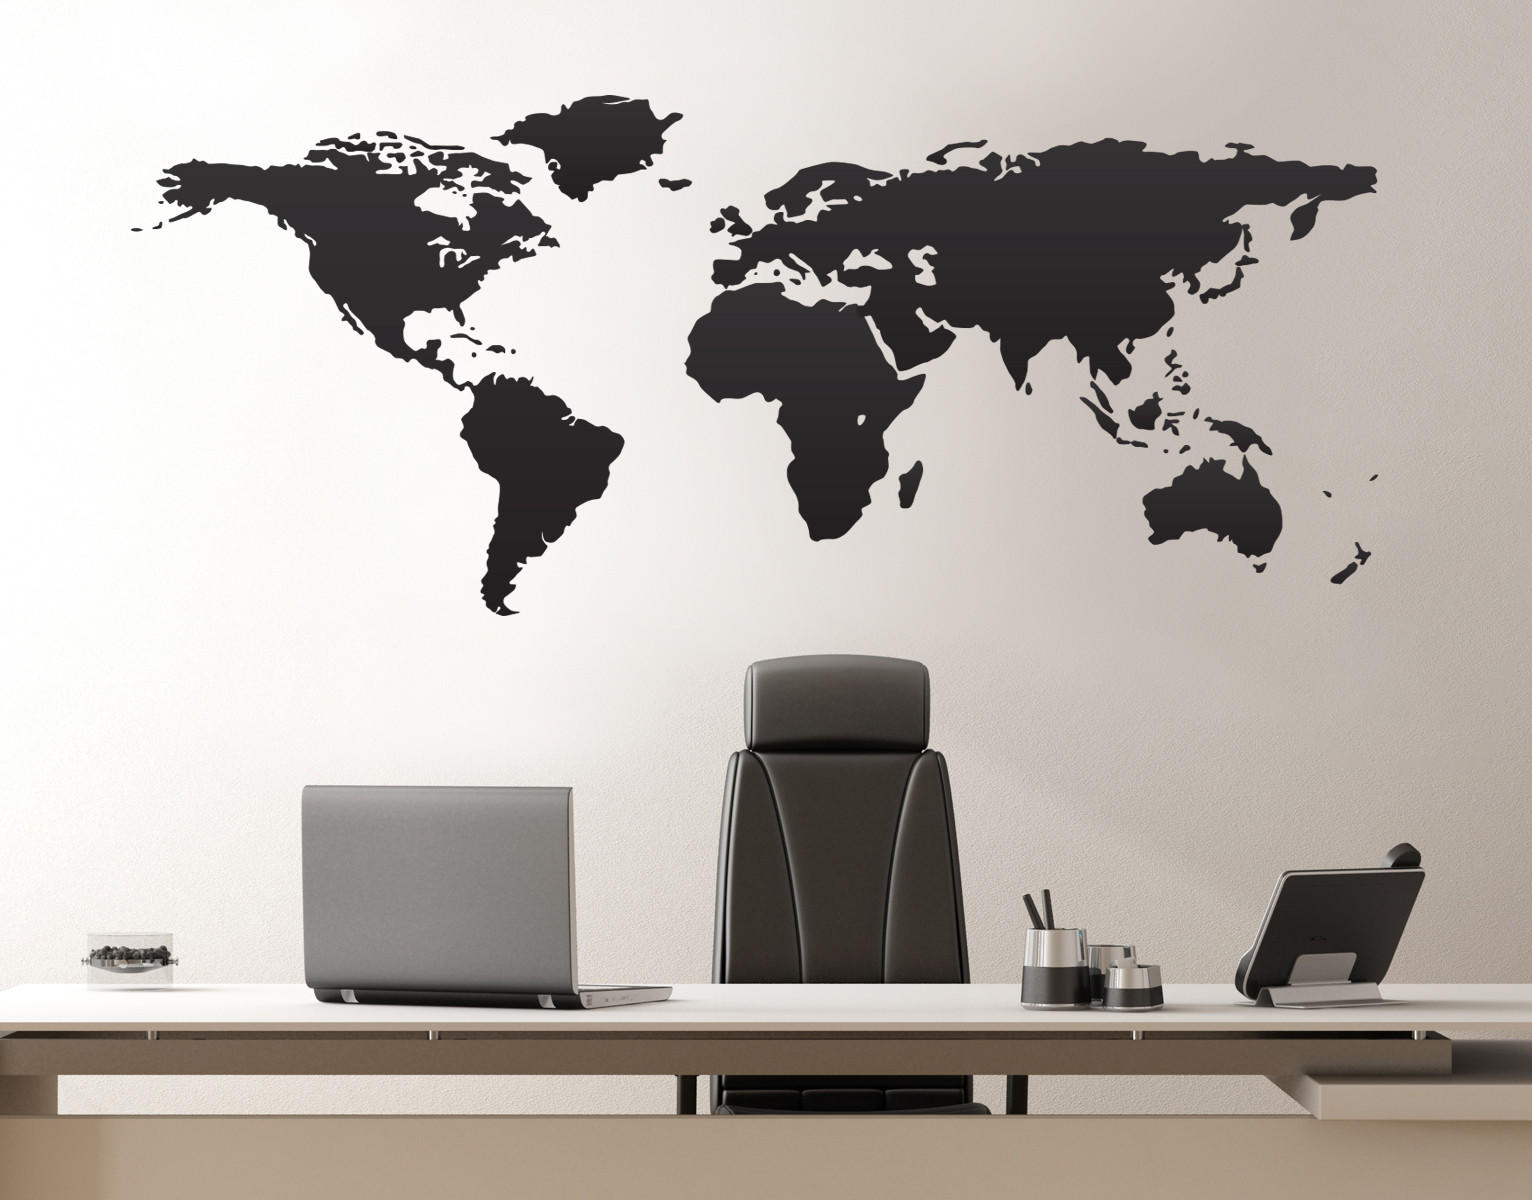 Vinyl wall art decal sticker world map from stickerbrand full size amipublicfo Gallery